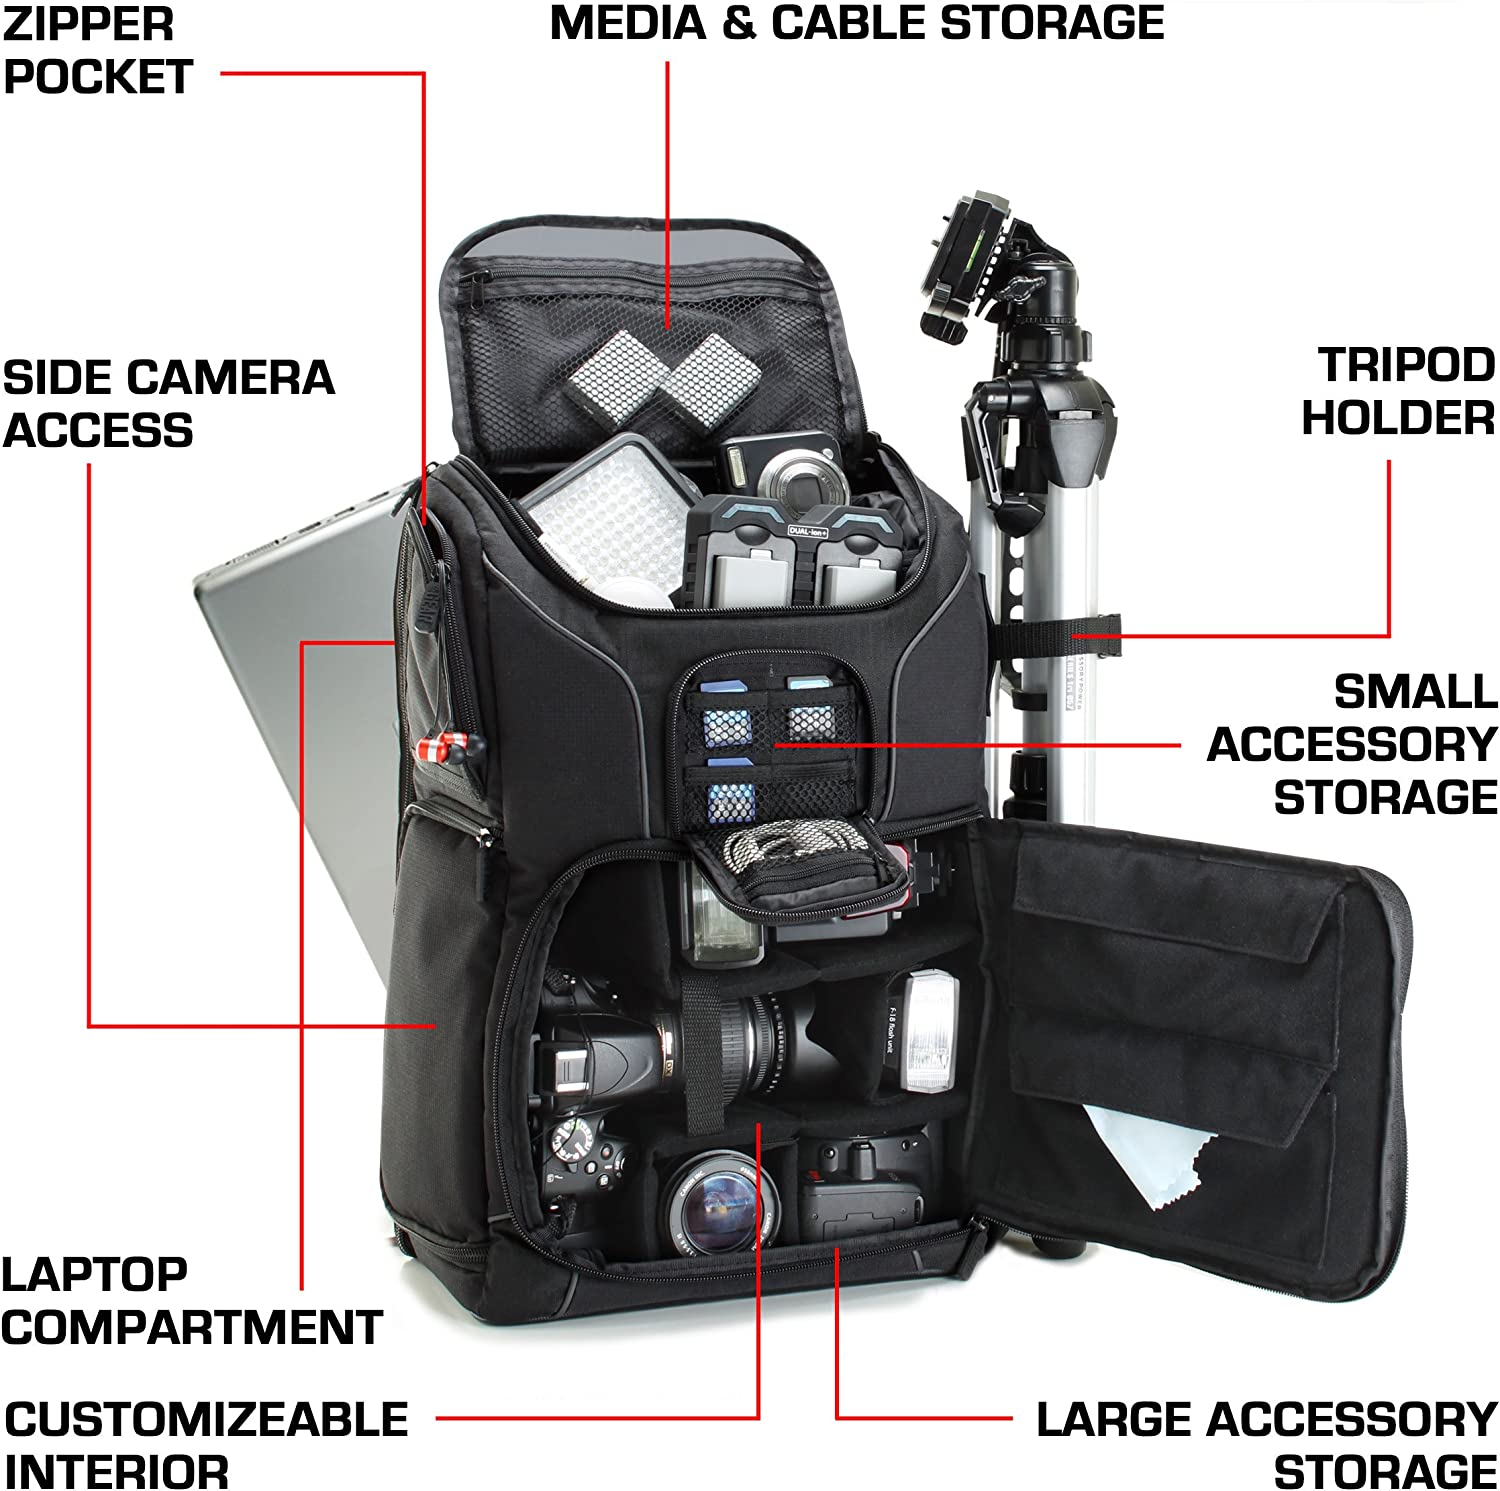 Amazon.com : Professional Camera Backpack DSLR Photo Bag with Comfort Strap  Design, Laptop, Tripod Holder, Lens and Accessory Storage for Canon EOS  Rebel T5, T5i, T6i and More Full-Sized Digital SLR Cameras :